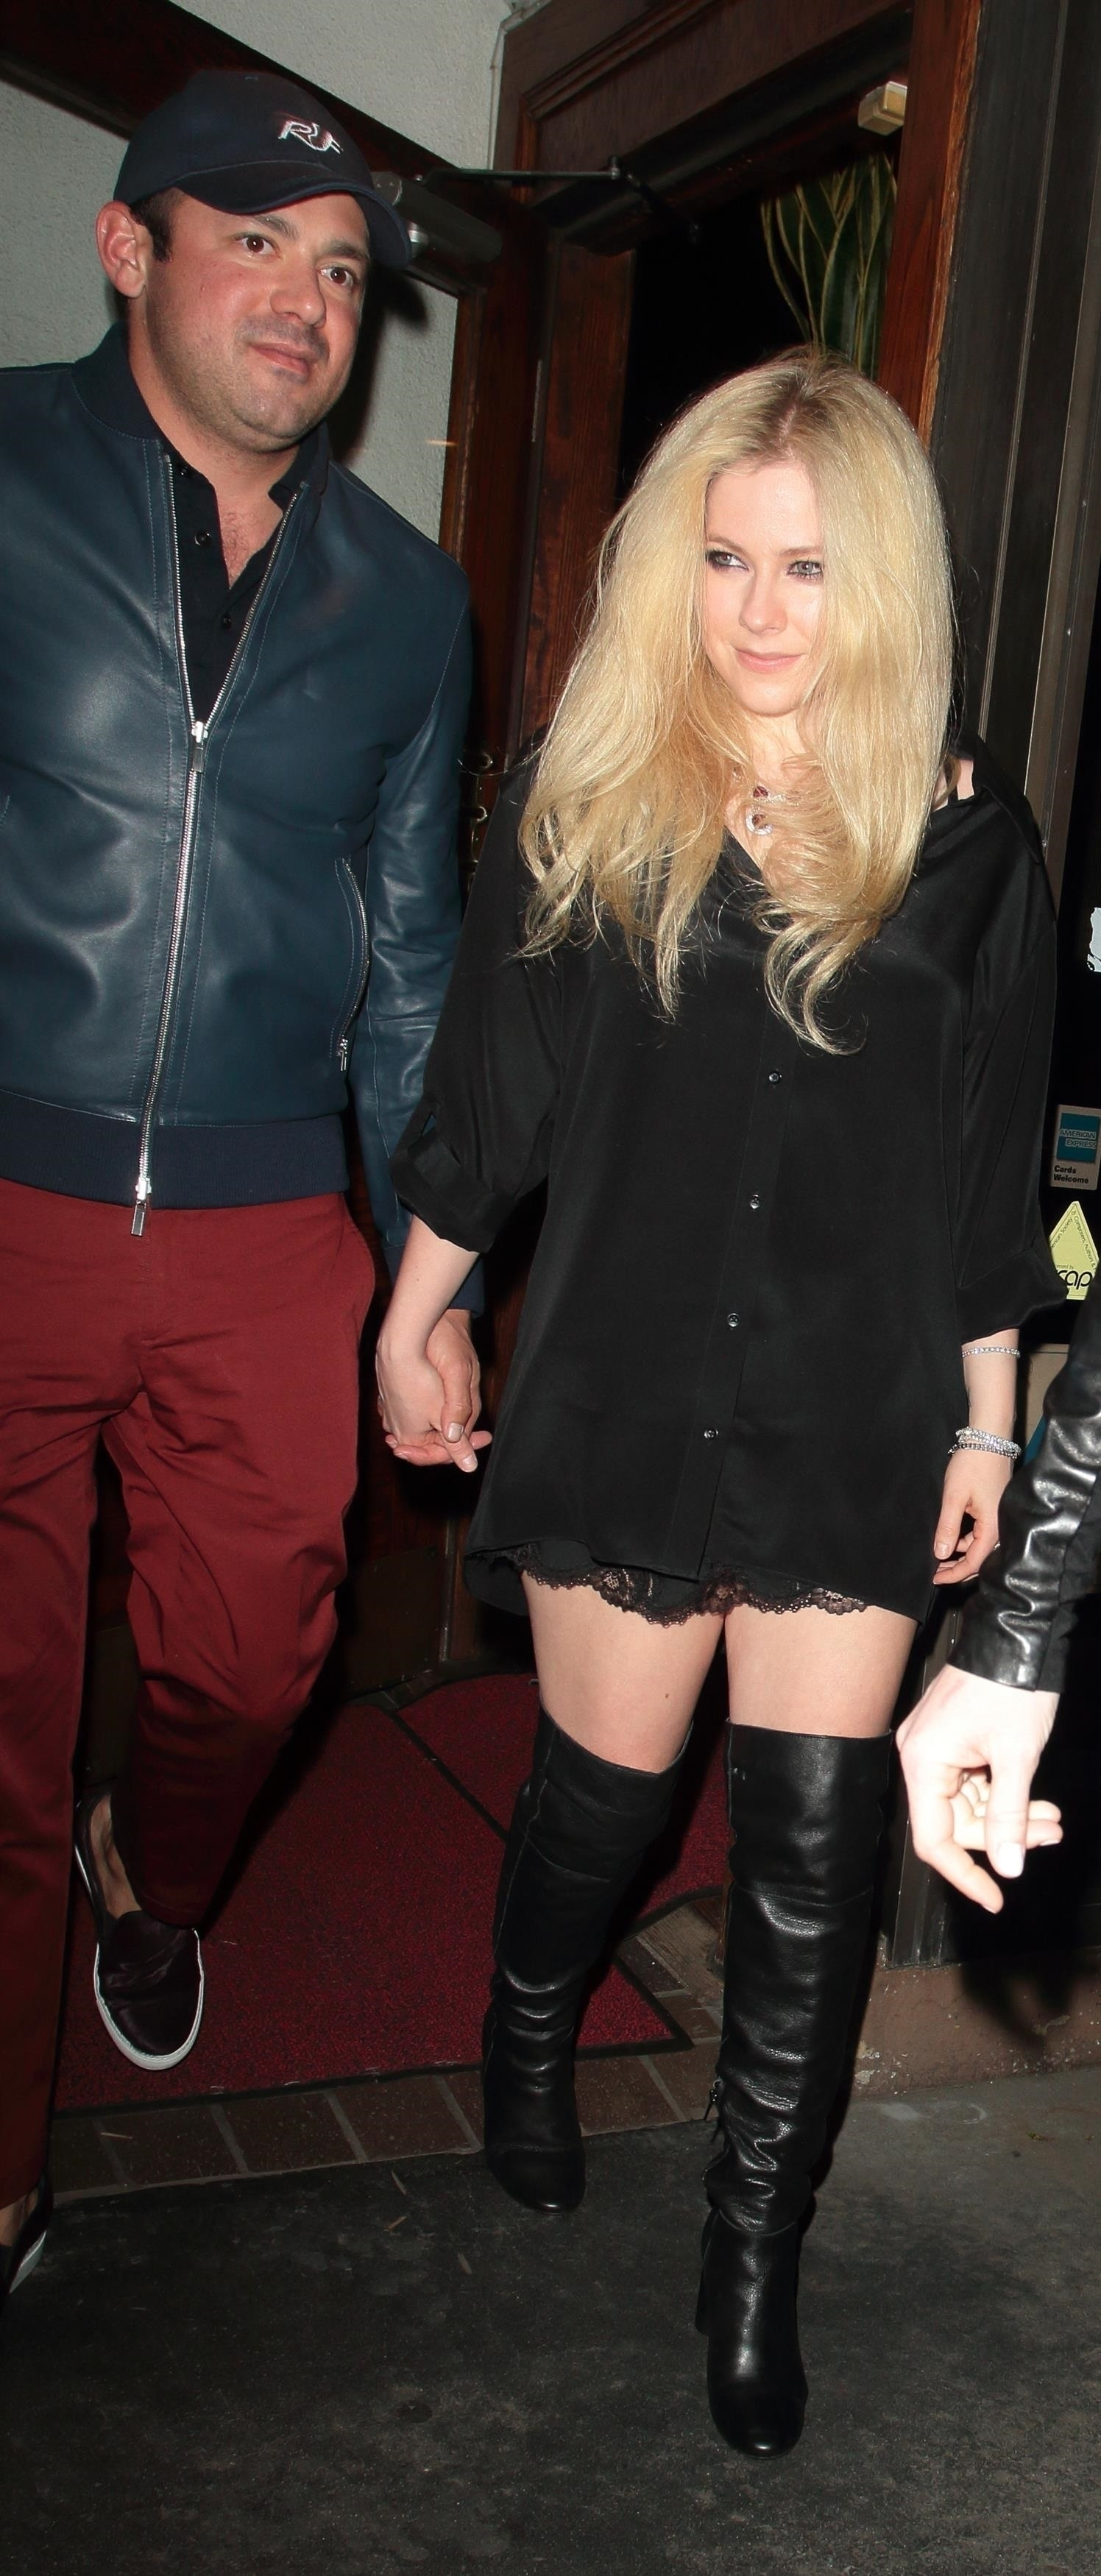 Avril Lavigne and billionaire boyfriend Phillip Sarofim look as serious as ever